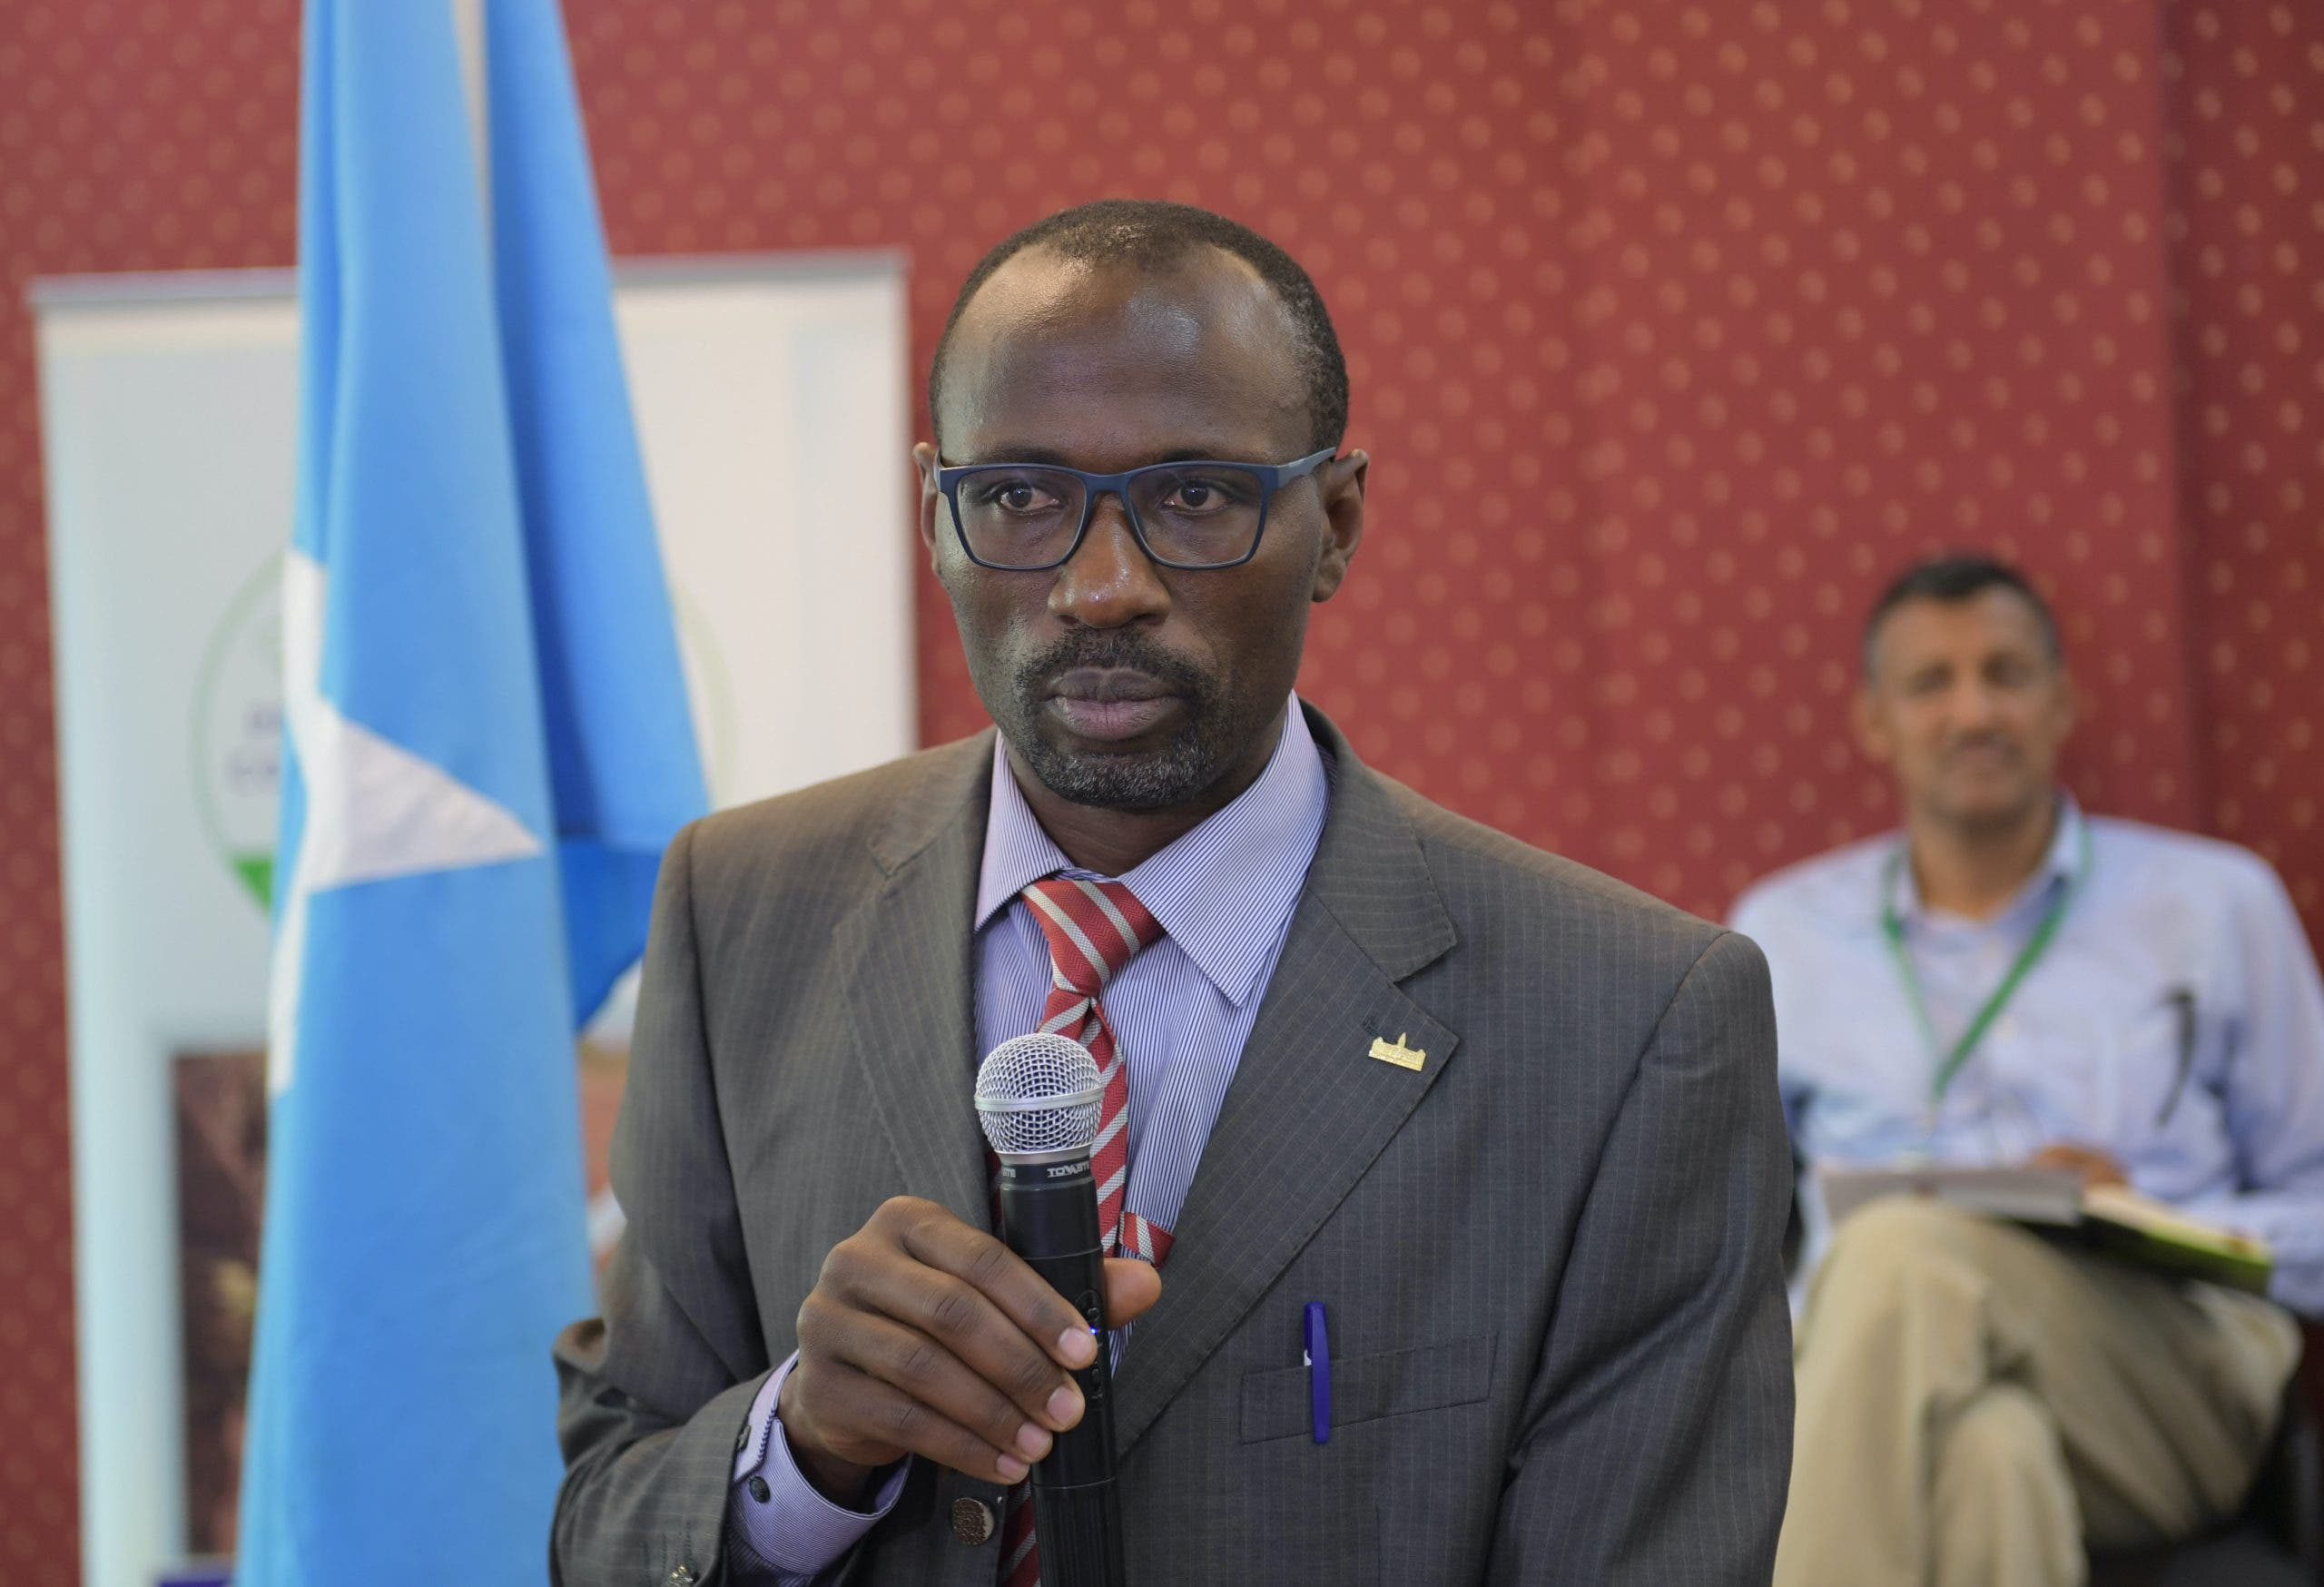 AMISOM chief Intelligence Dr. Walters Samah 'removed from Mogadishu for breach of mandate and malpractices'